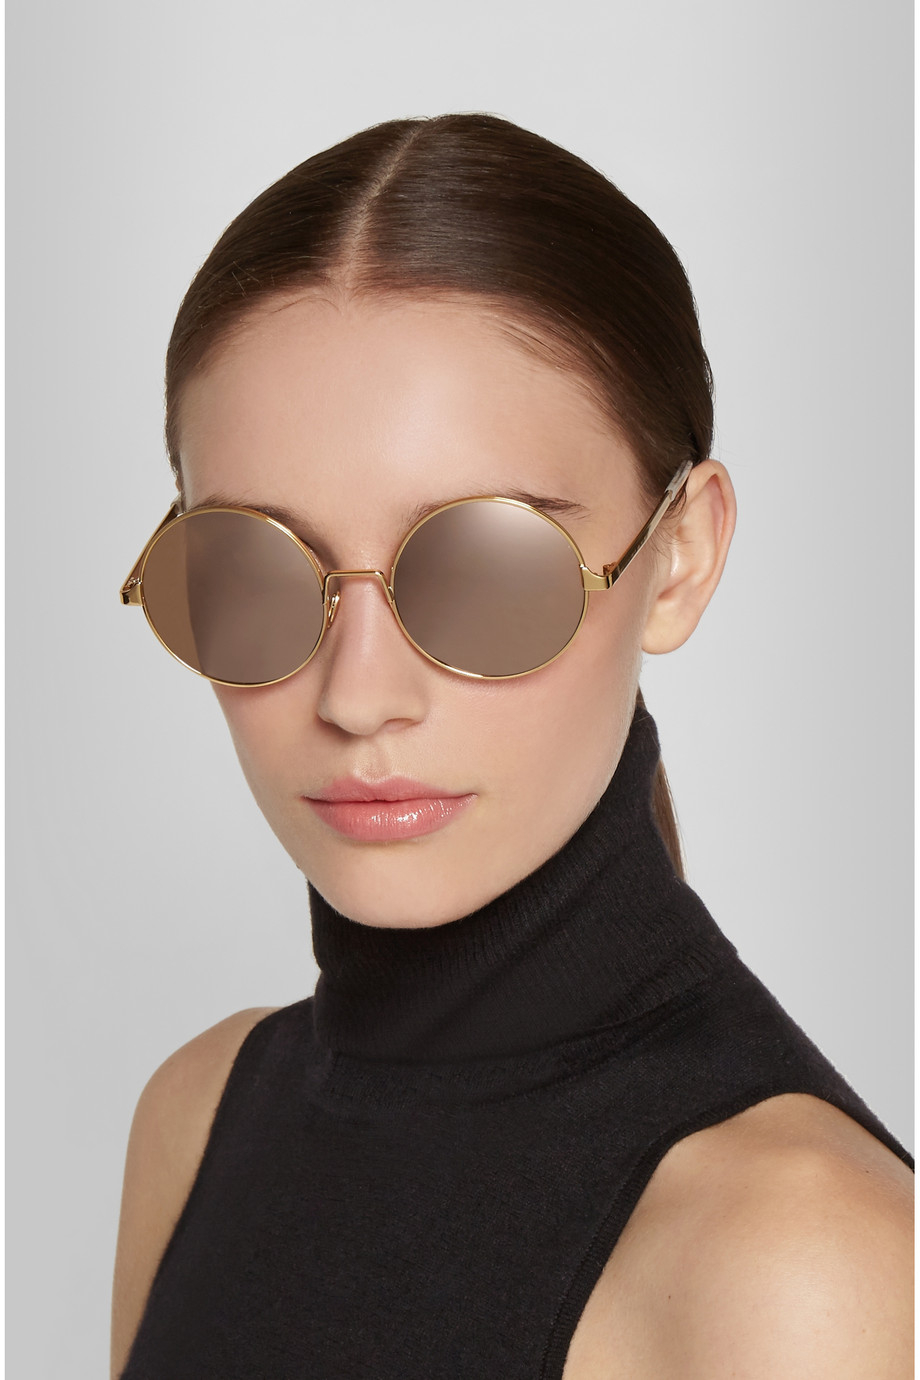 Mirrored Round Sunglasses  cutler gross round frame gold plated mirrored sunglasses in